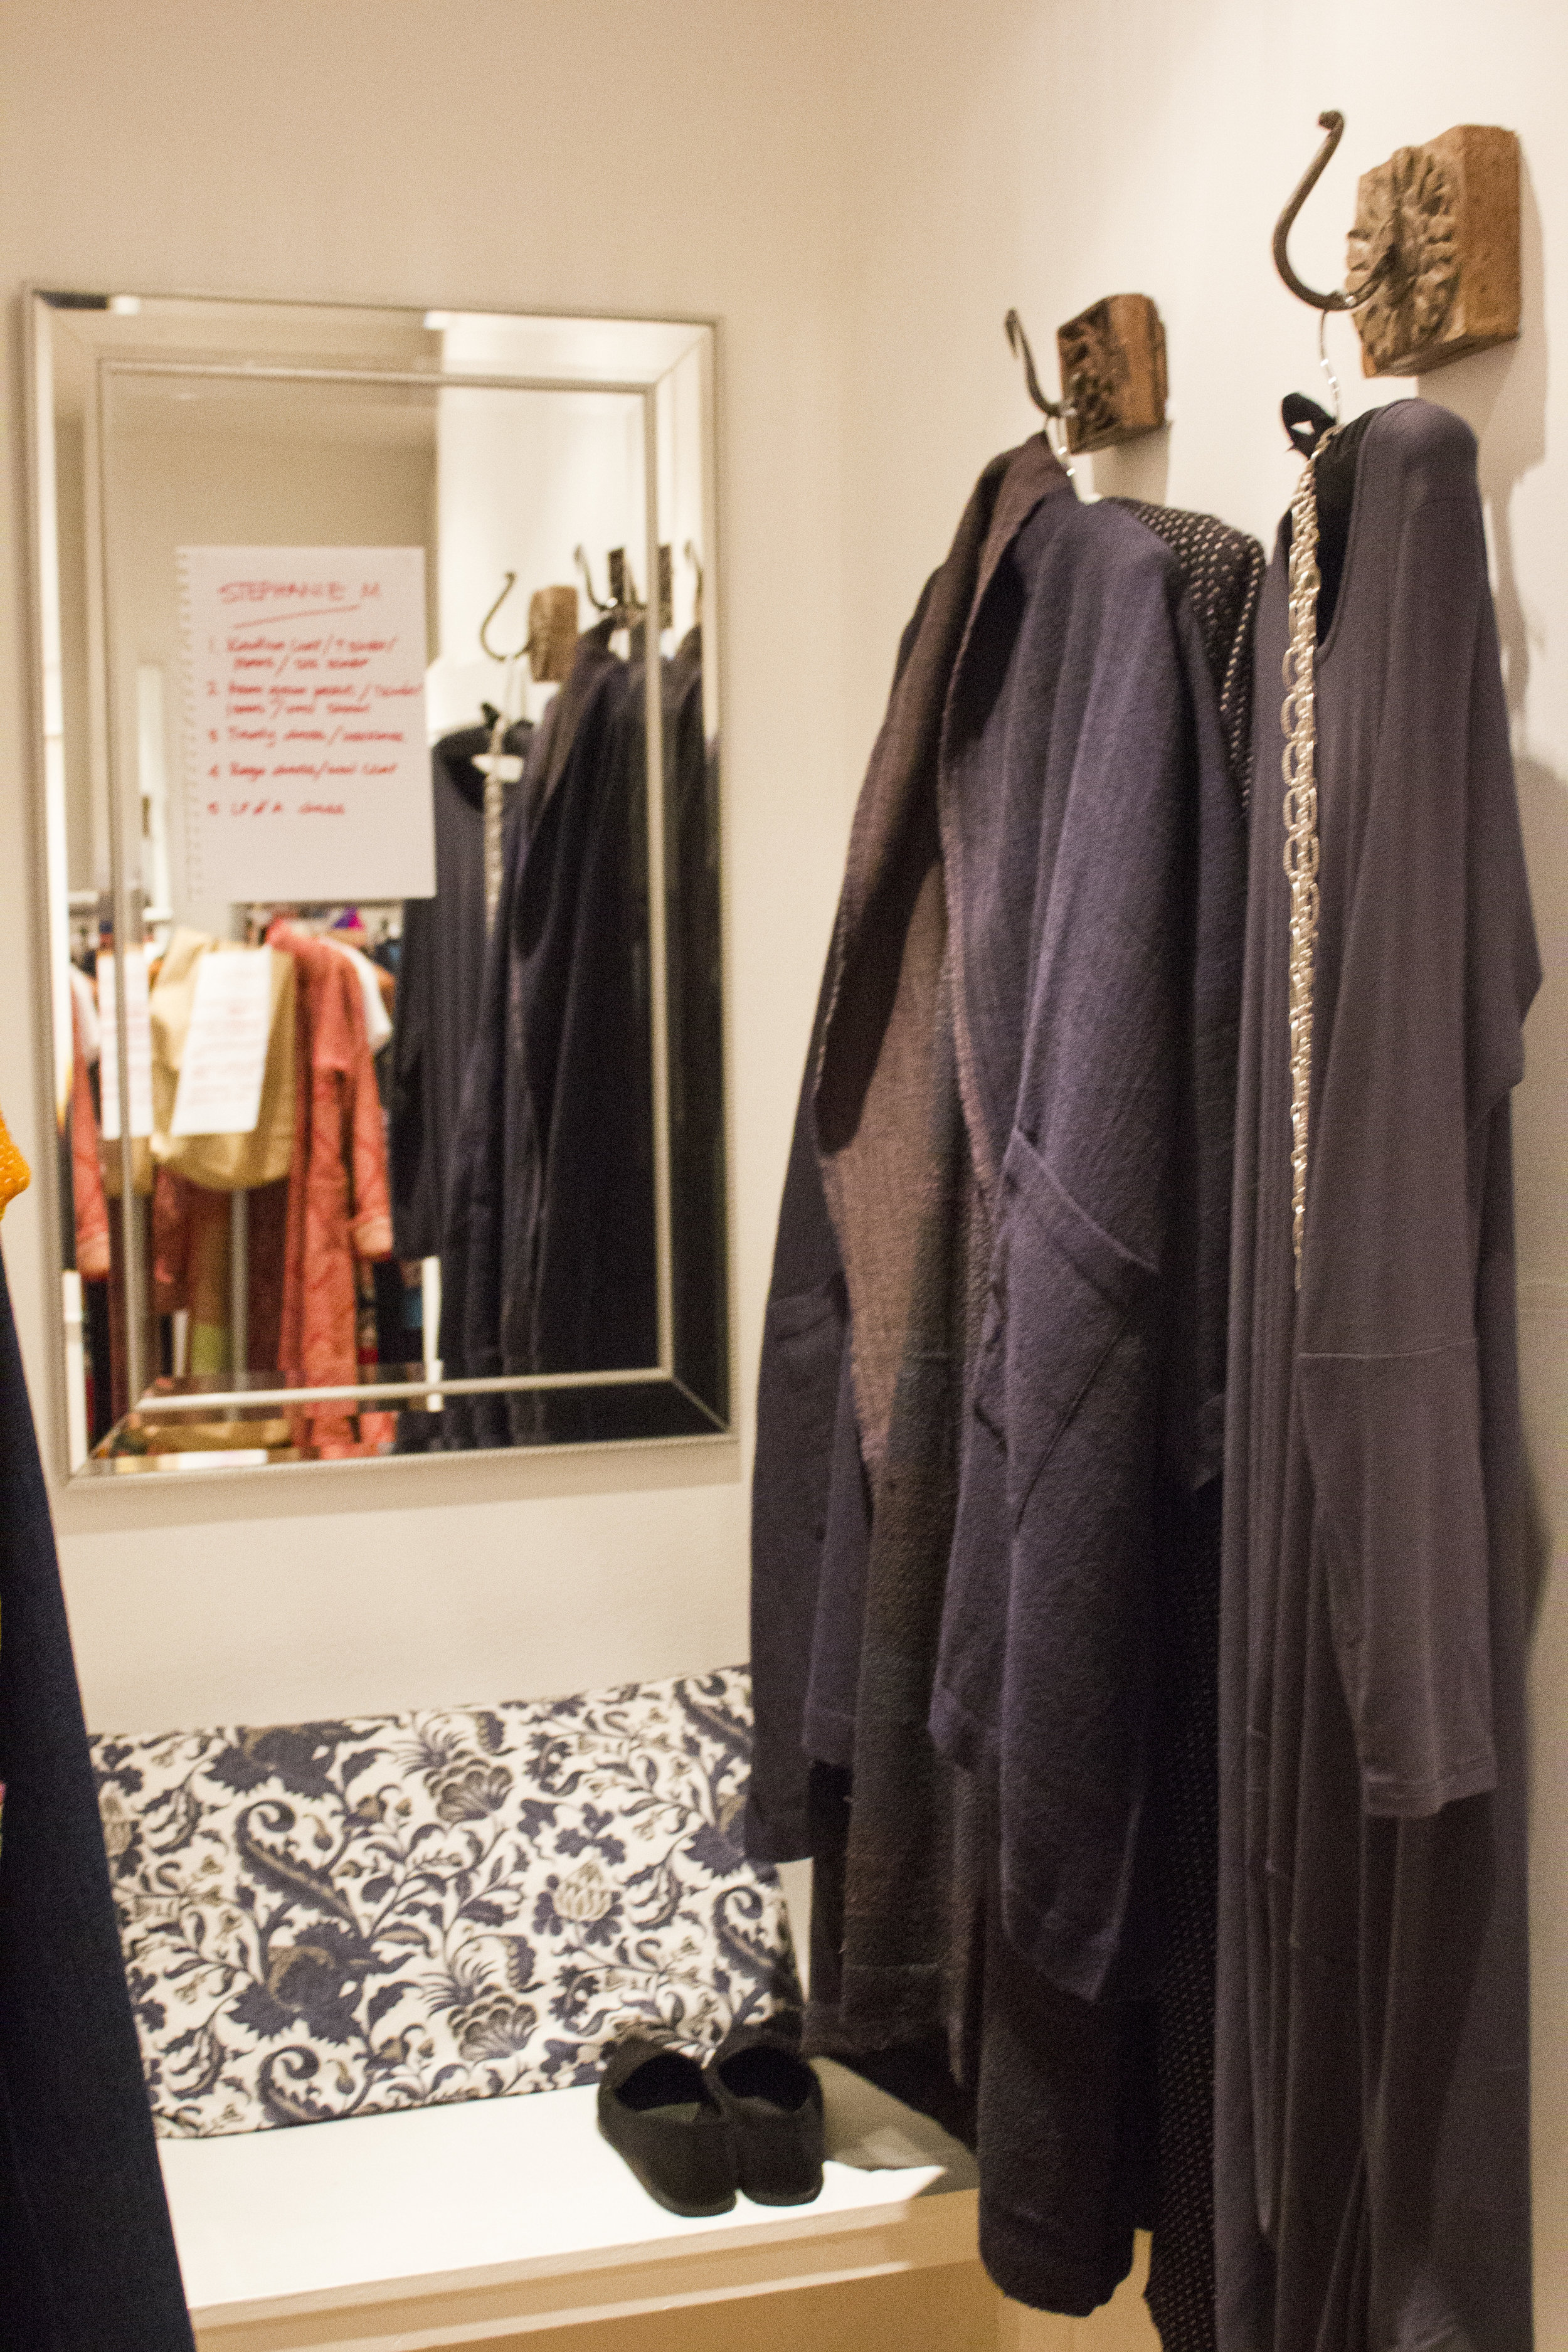 The dressing rooms with outfit running order on mirror